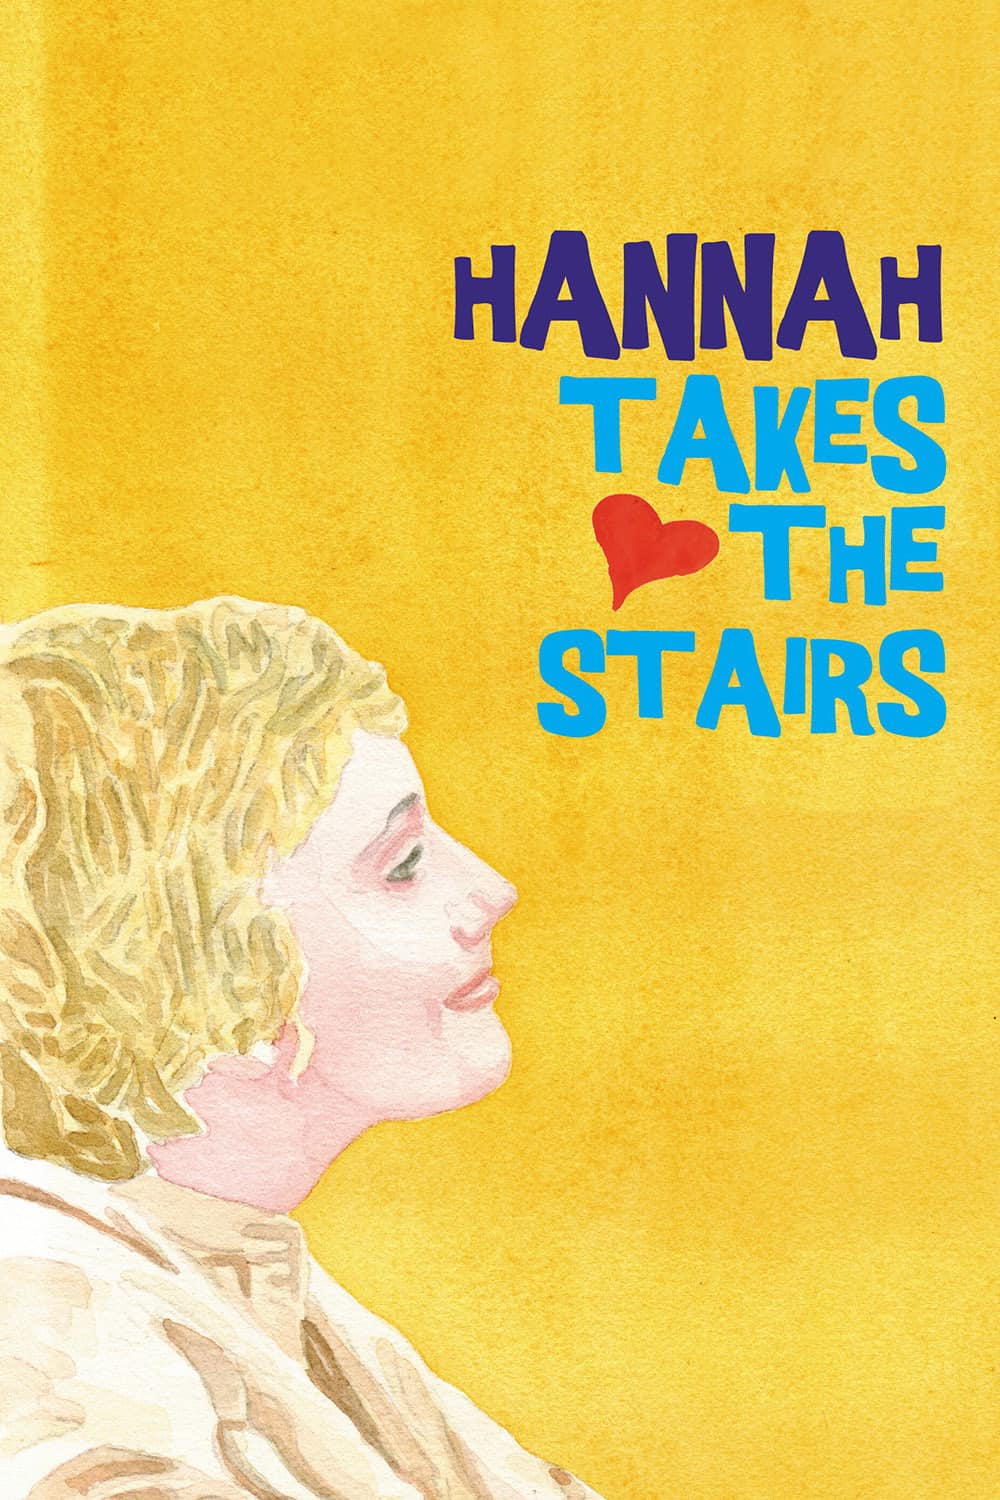 Hannah Takes the Stairs, 2007